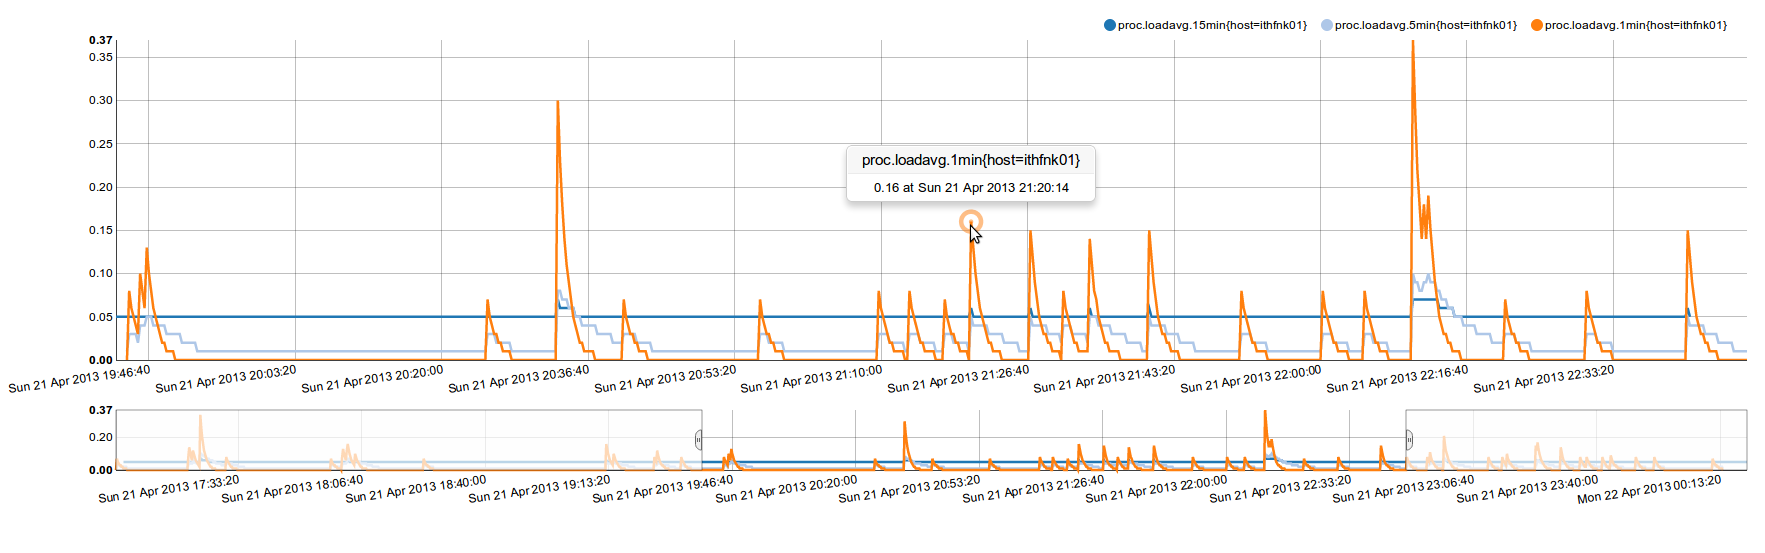 load average graph using opentsdb data but generated with nvd3 library